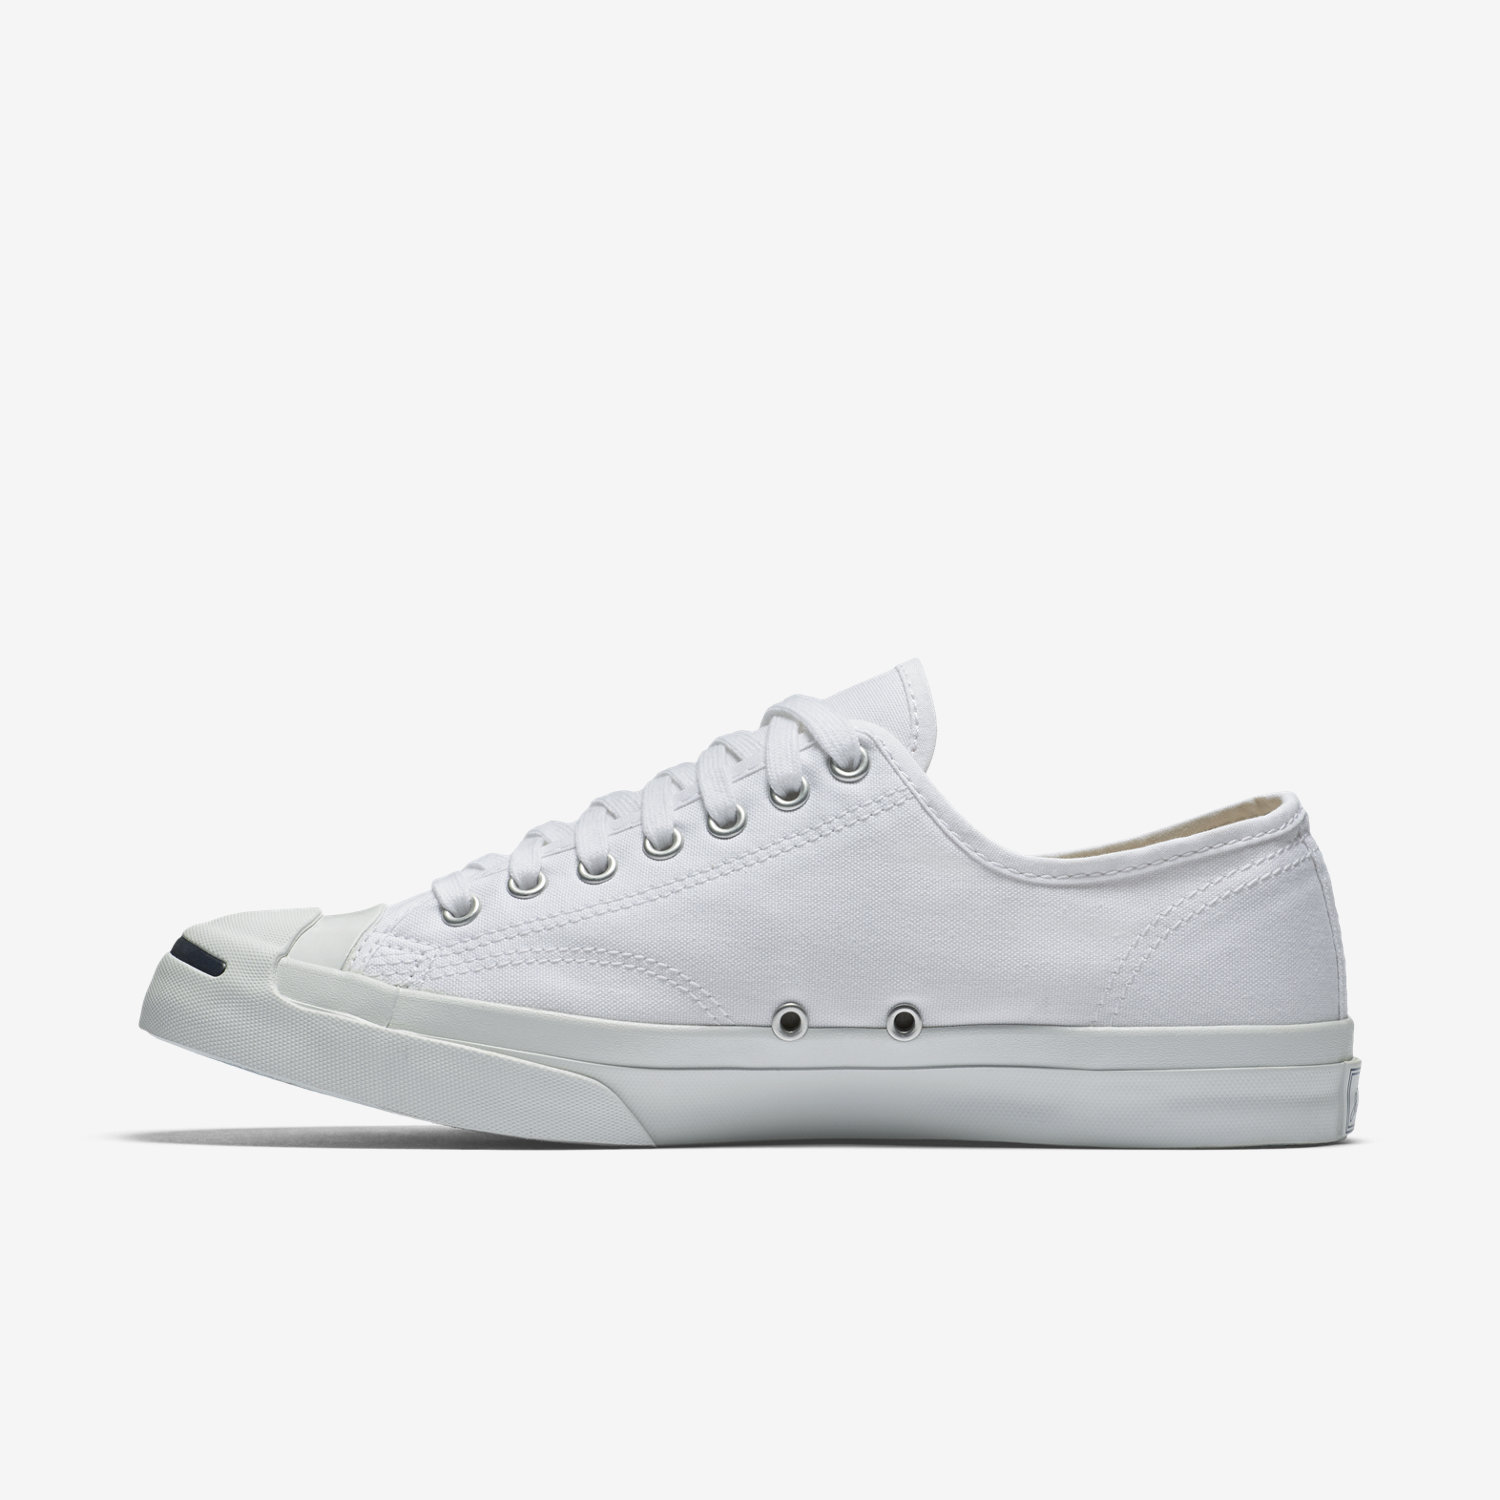 52eb235e8f6c best price converse white shoes price 11ae4 d053d